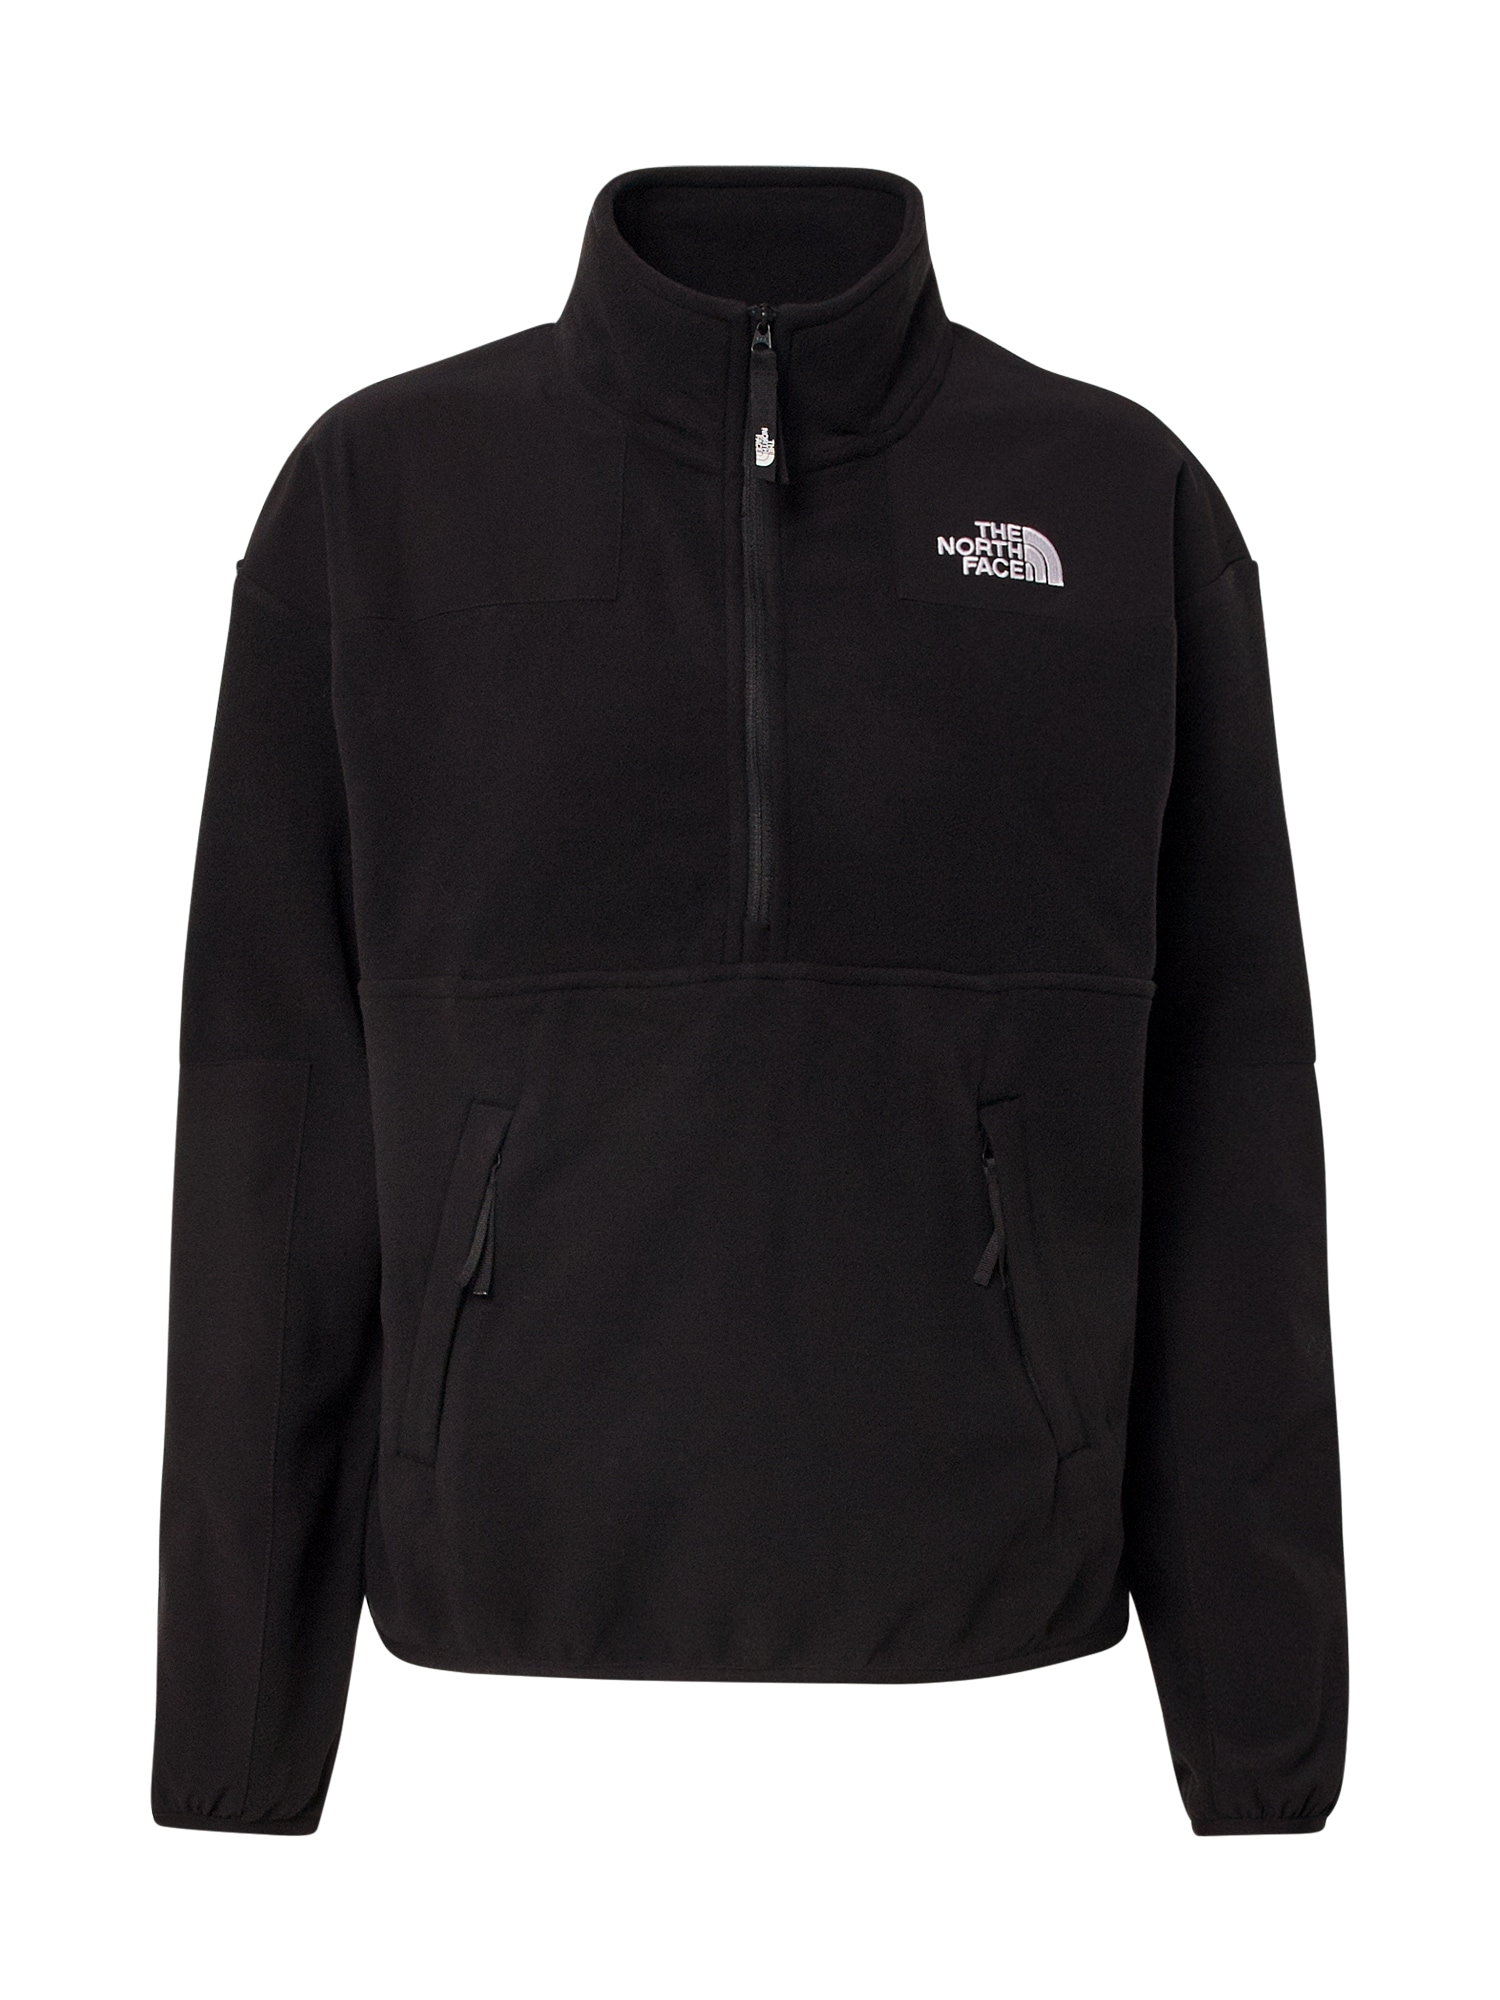 THE NORTH FACE Fleecová mikina Women's What The Fleece černá The North Face